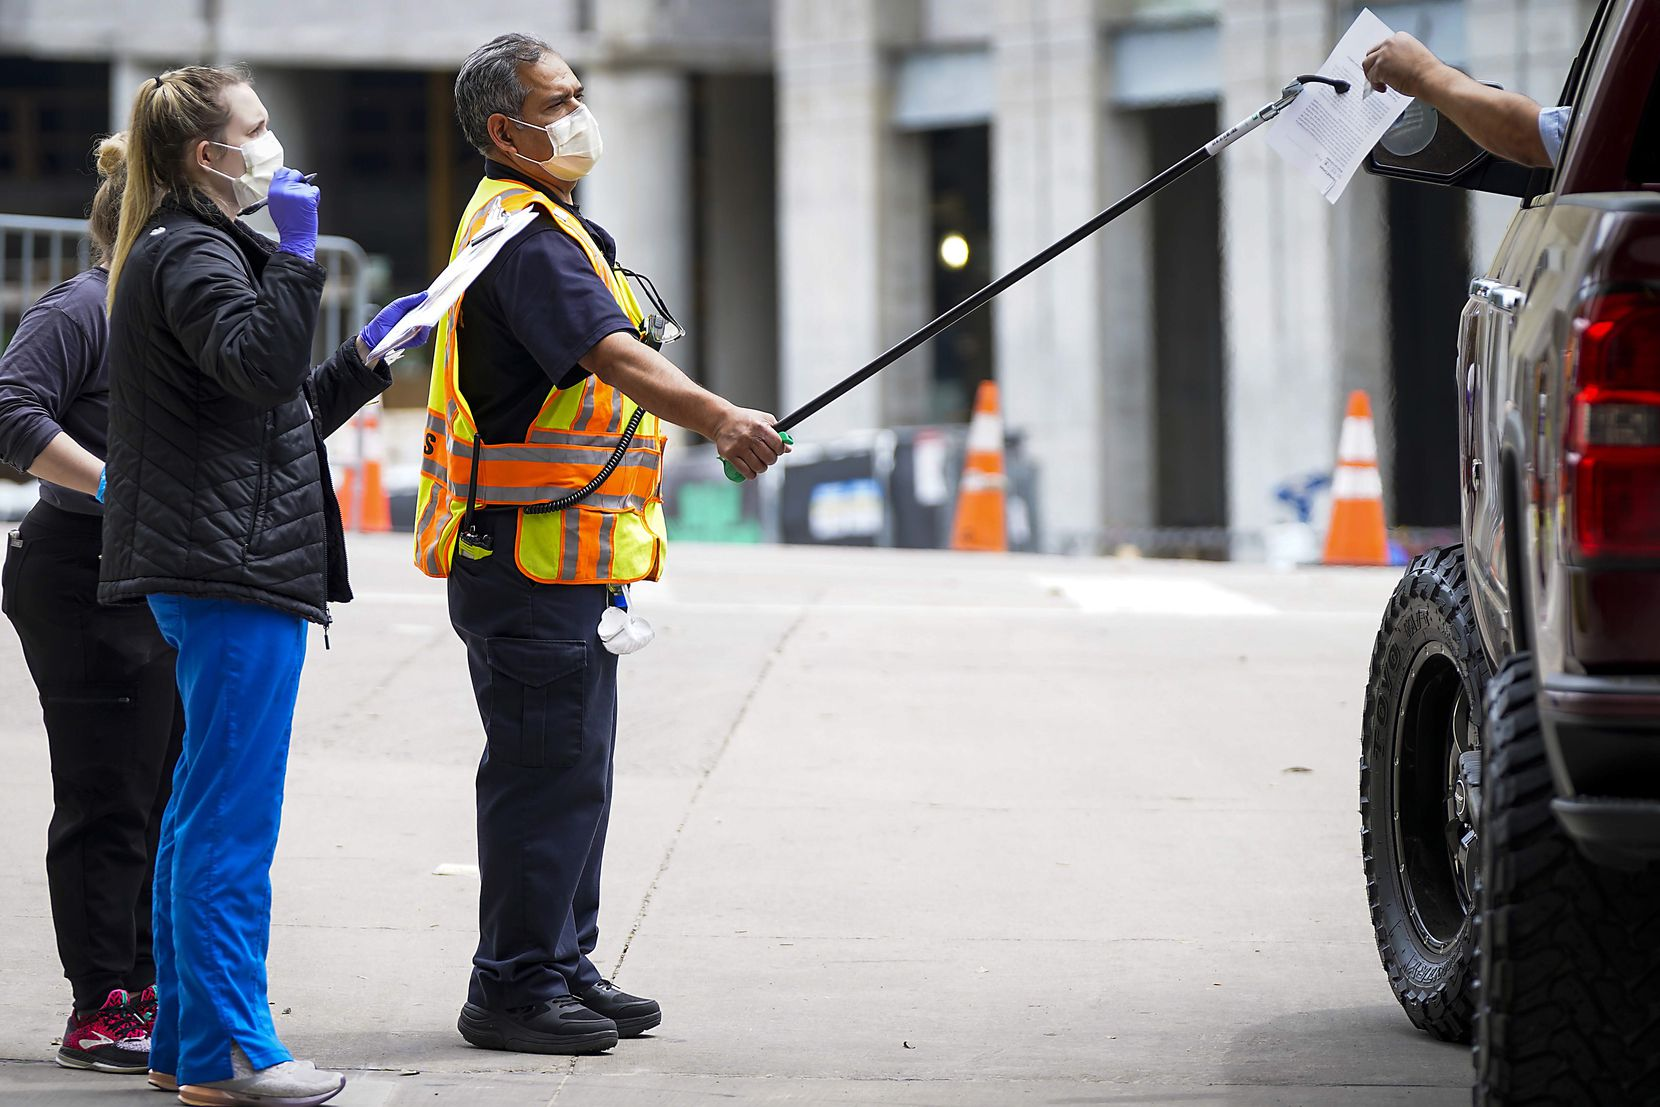 Health-care workers used a gripper tool to give paperwork to a person being screened at a COVID-19 drive-through testing site at American Airlines Center in April.